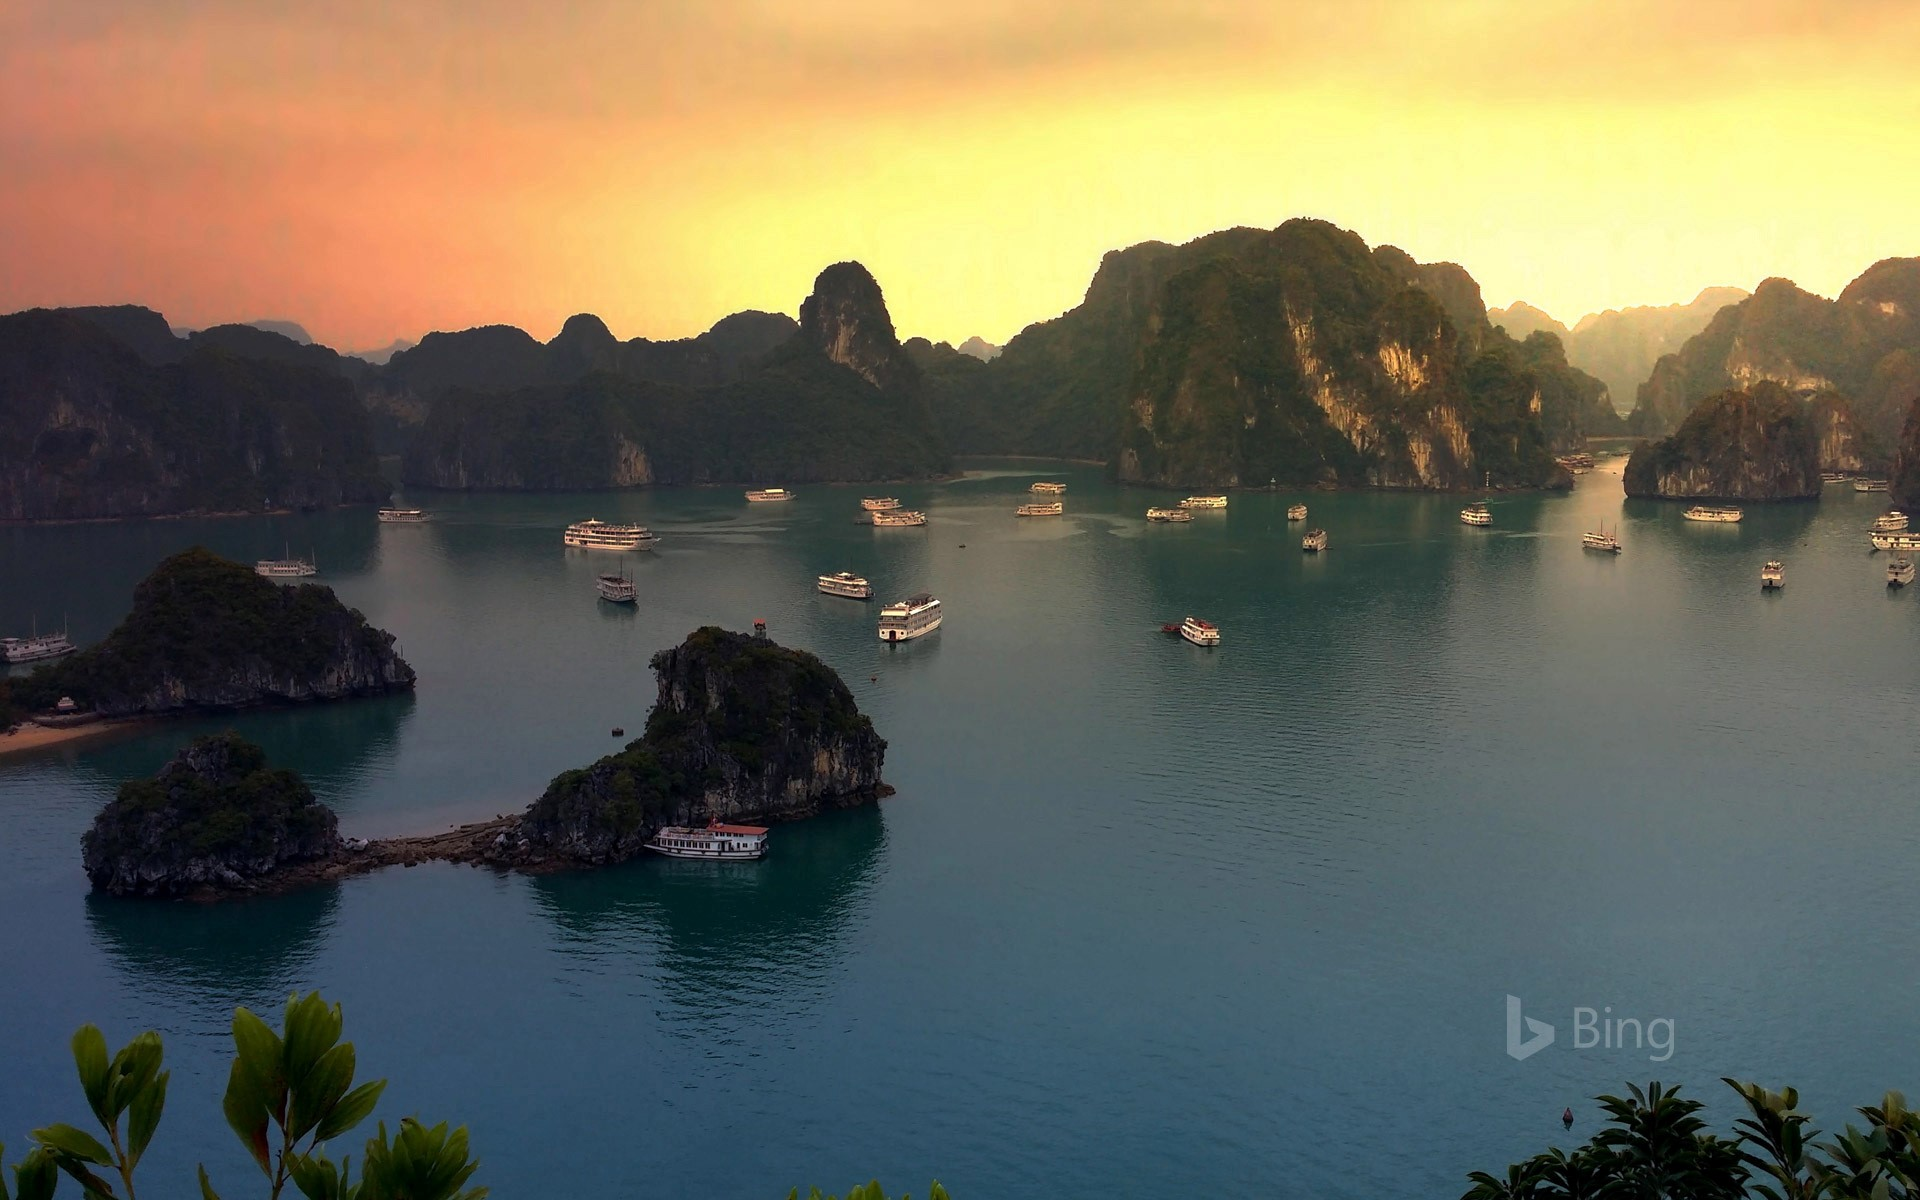 Sunset on Hạ Long Bay, Vietnam